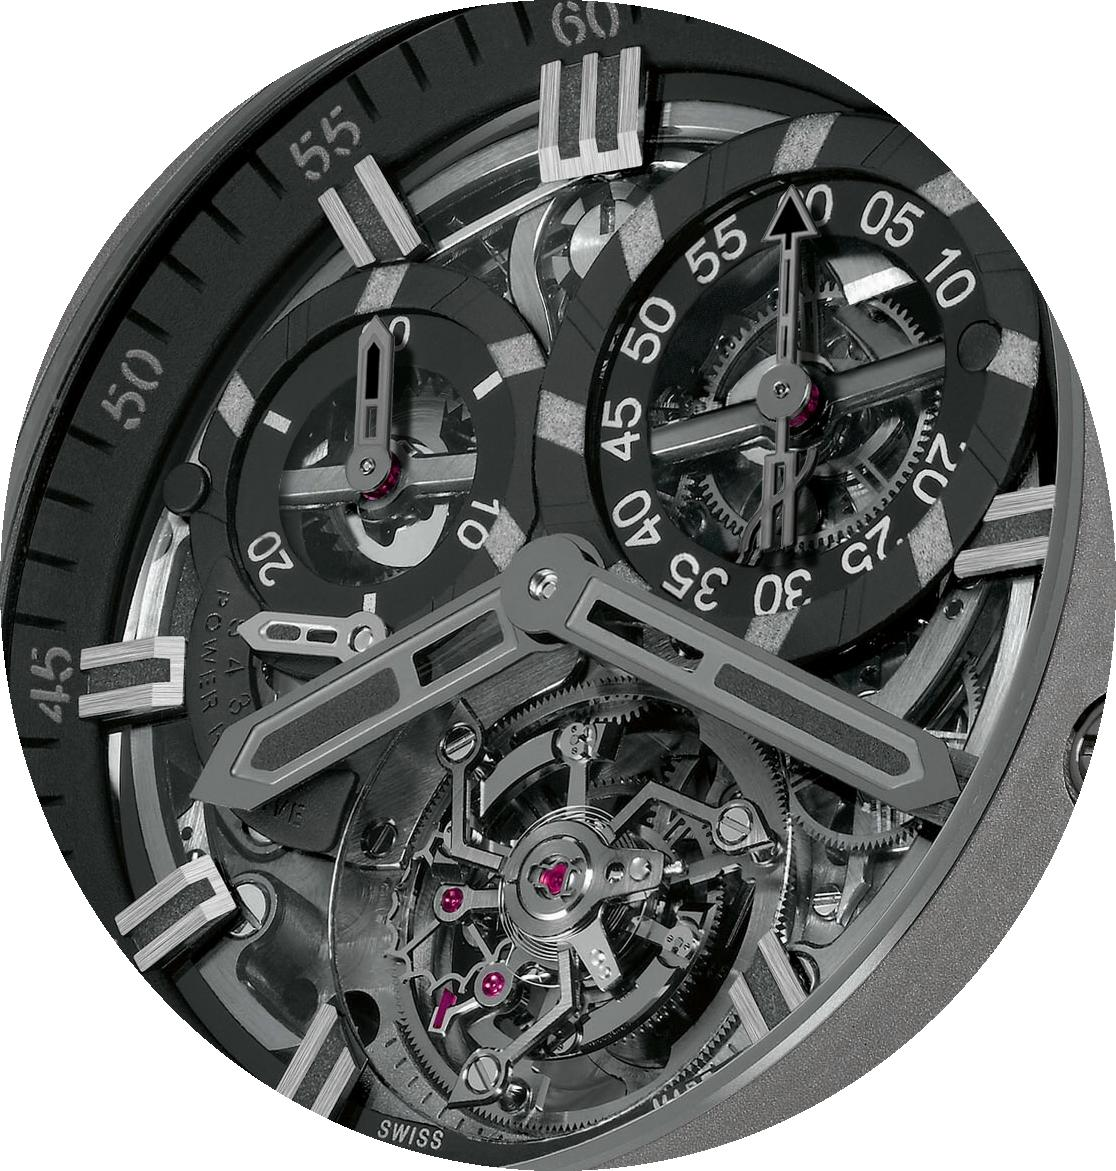 Hublot - King Power Chrono Flying Tourbillon